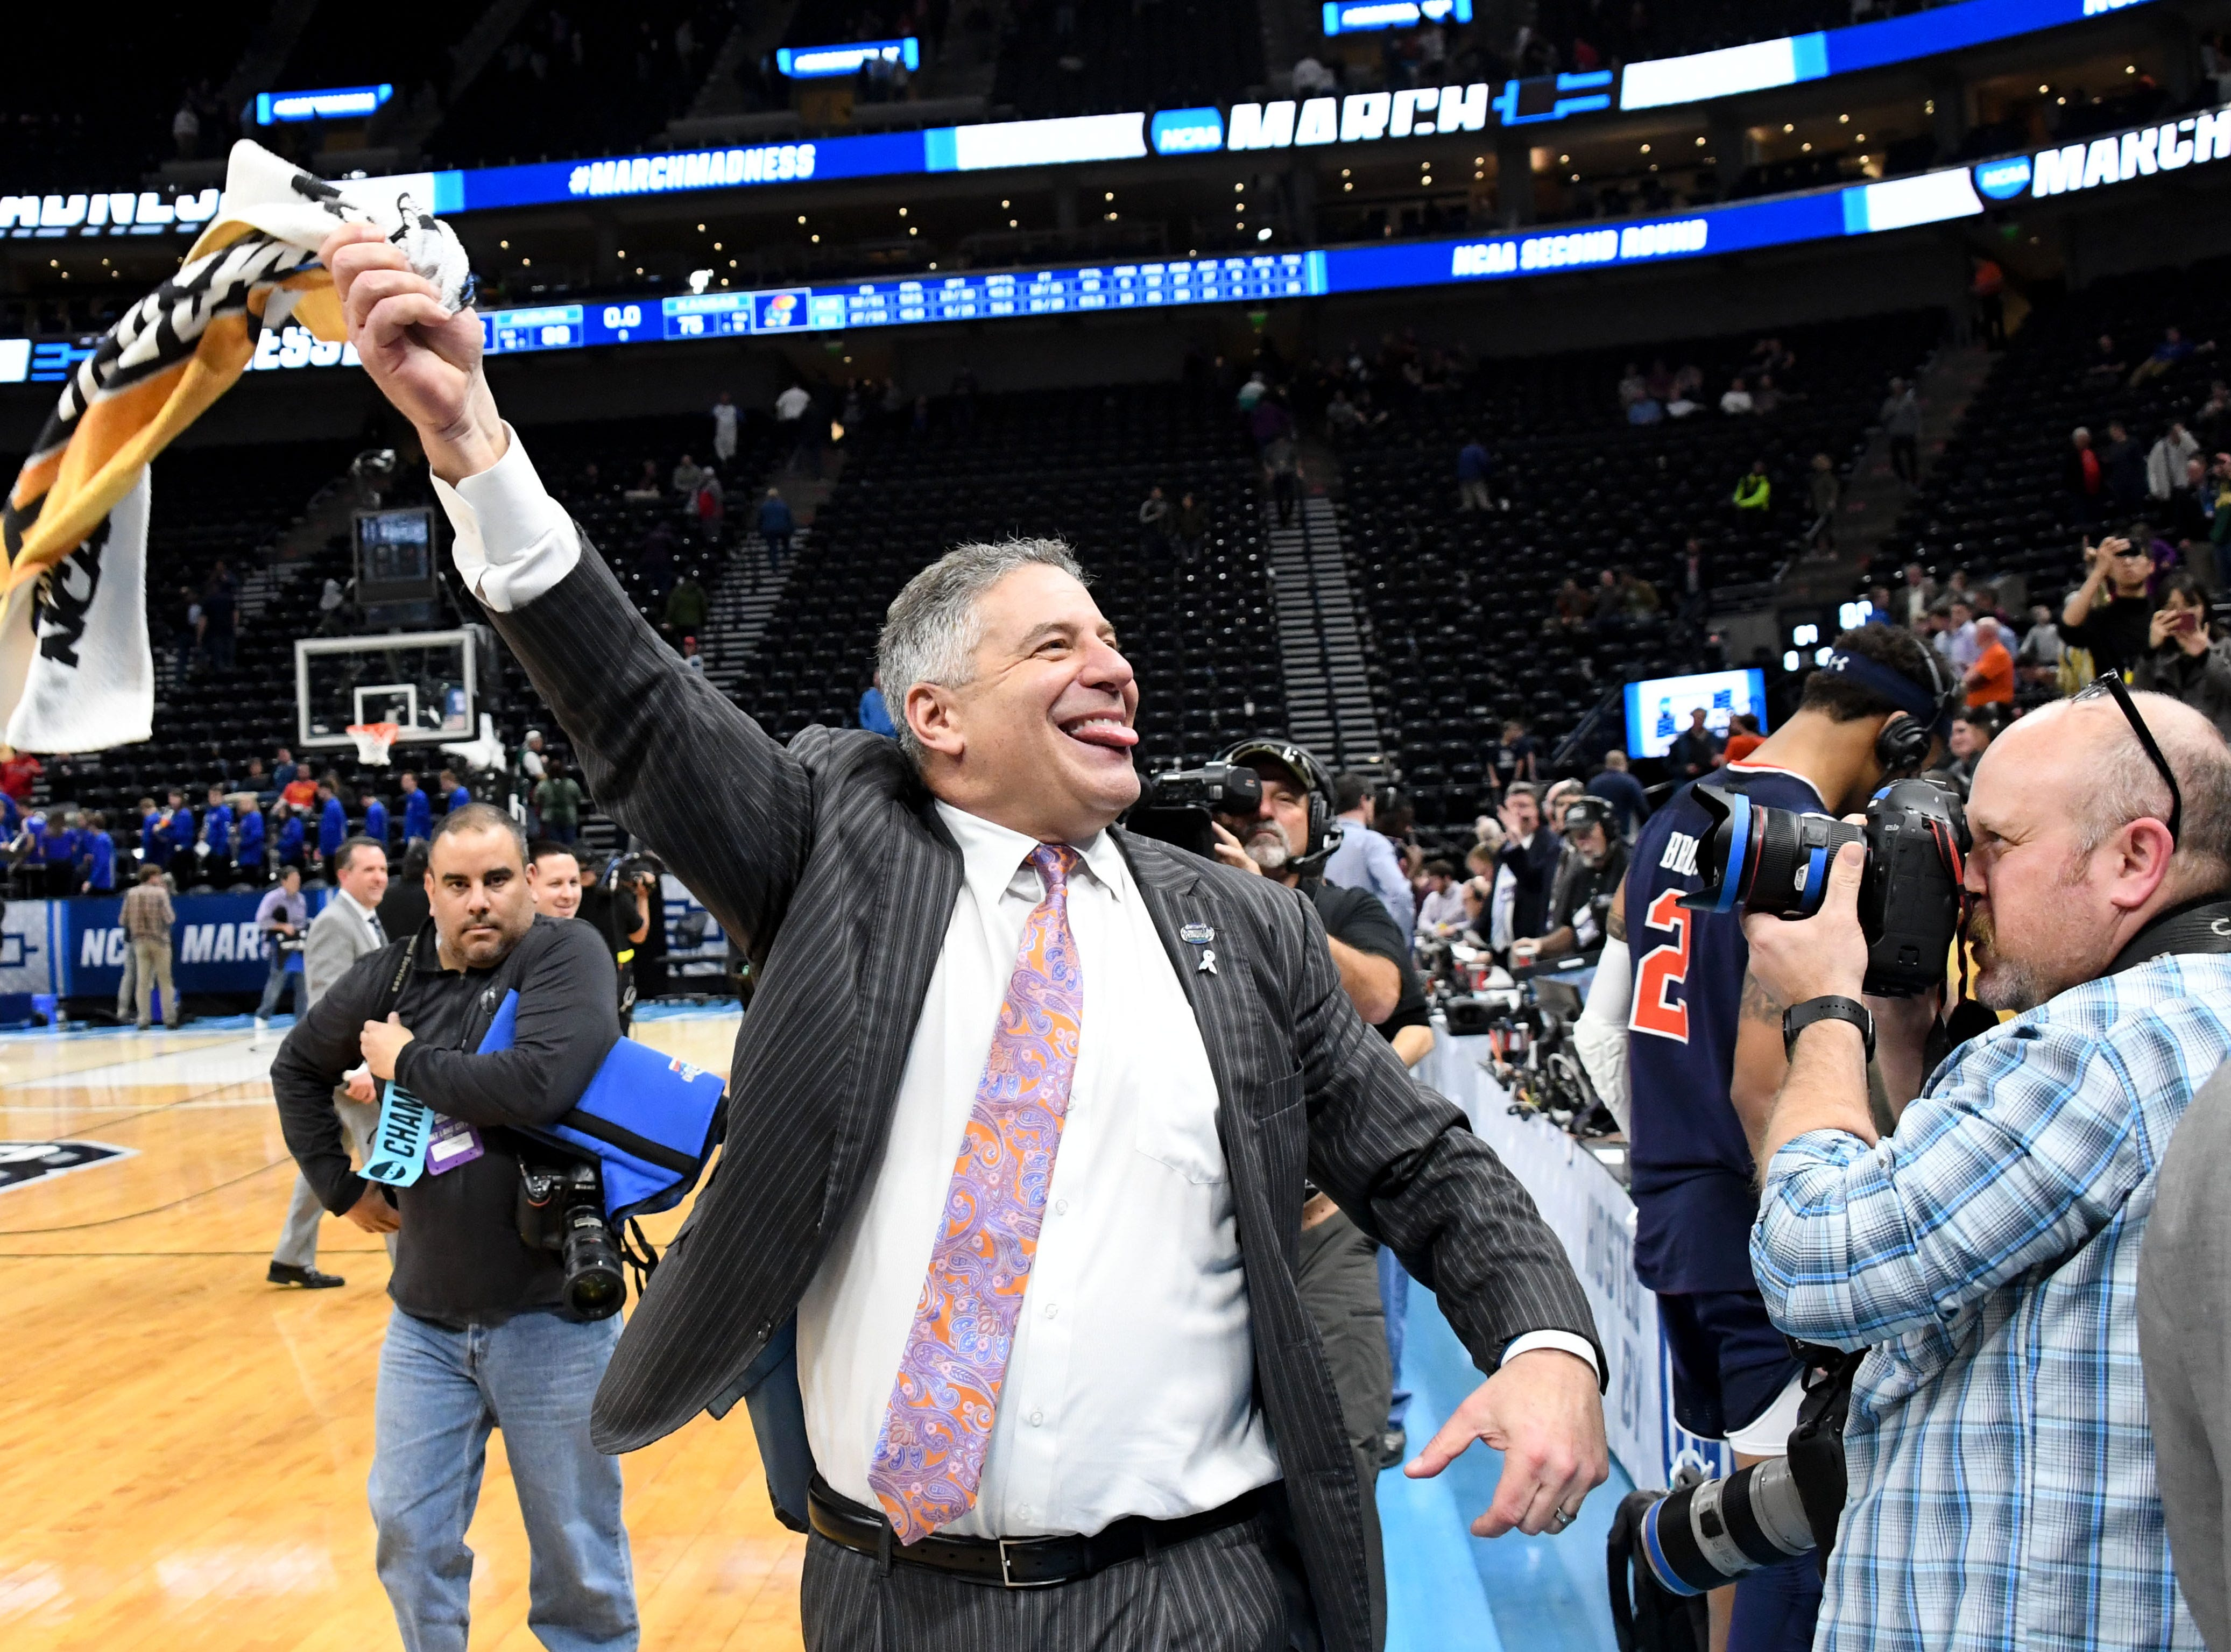 Auburn coach Bruce Pearl celebrates the win over the Kansas Jayhawks in the second round of the 2019 NCAA Tournament at Vivint Smart Home Arena on March 23, 2019, in Salt Lake City.